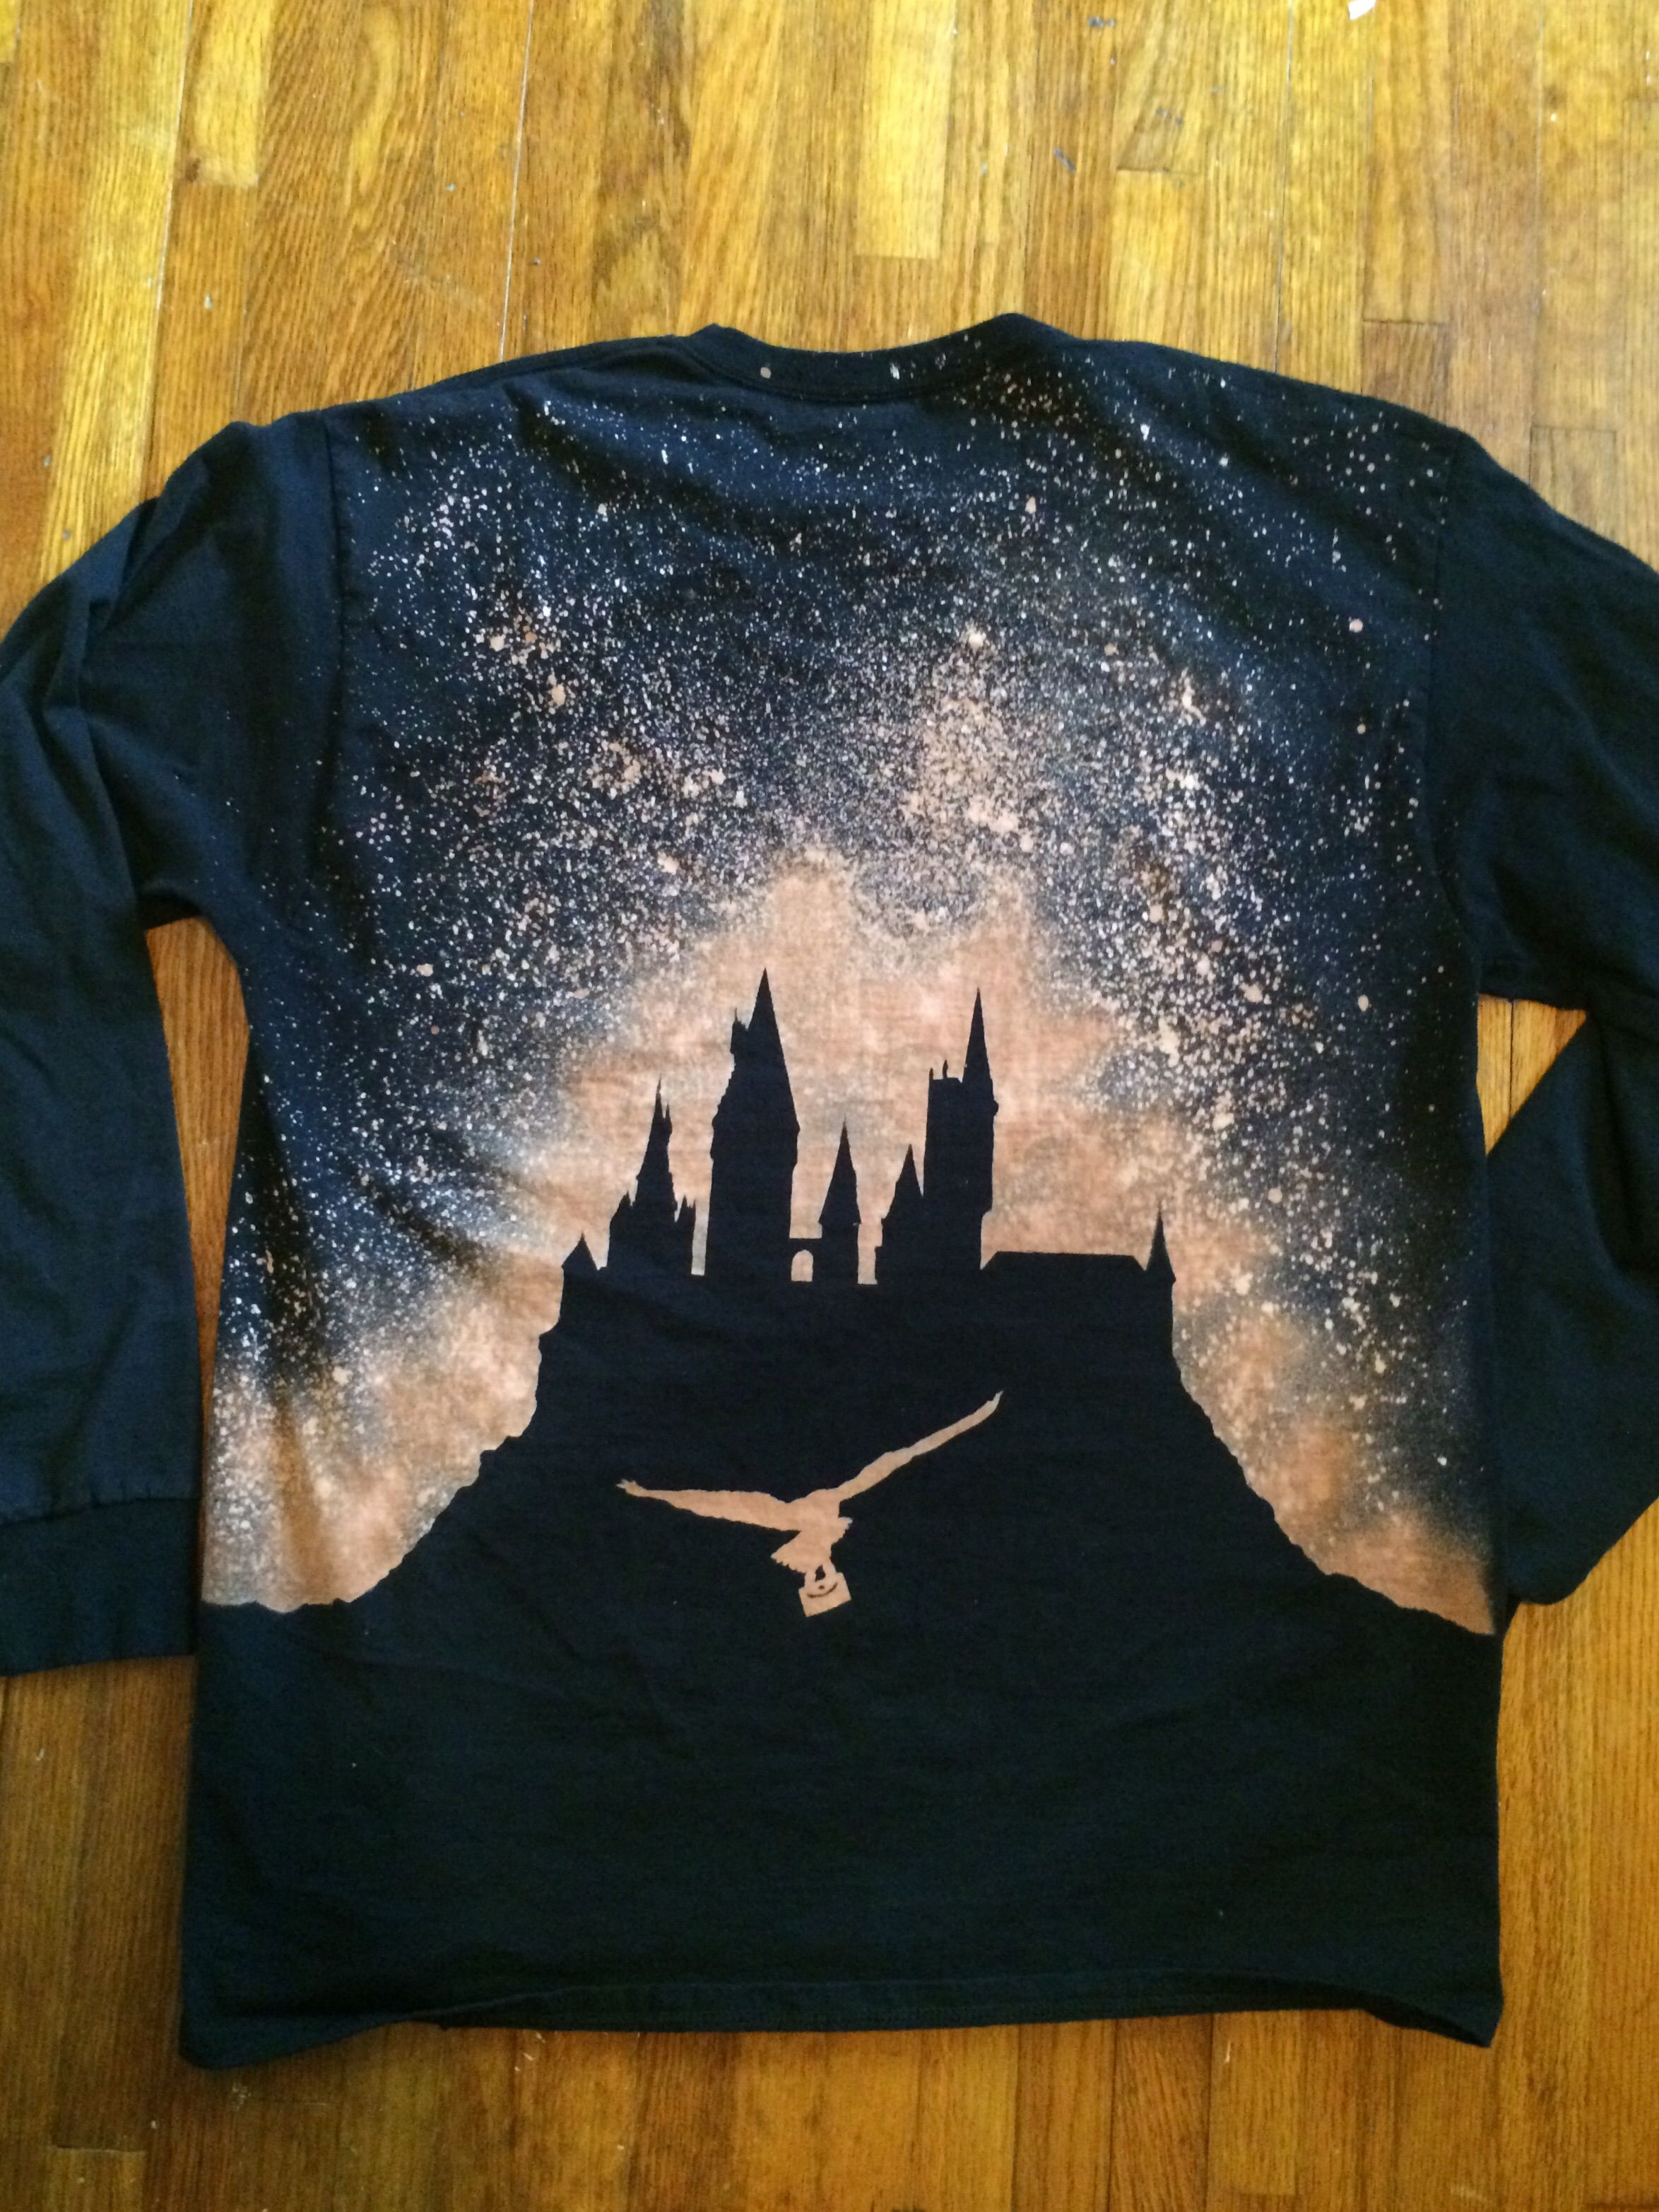 Harry potter bleach shirts bleach shirts cricut and for How to bleach designs into shirts